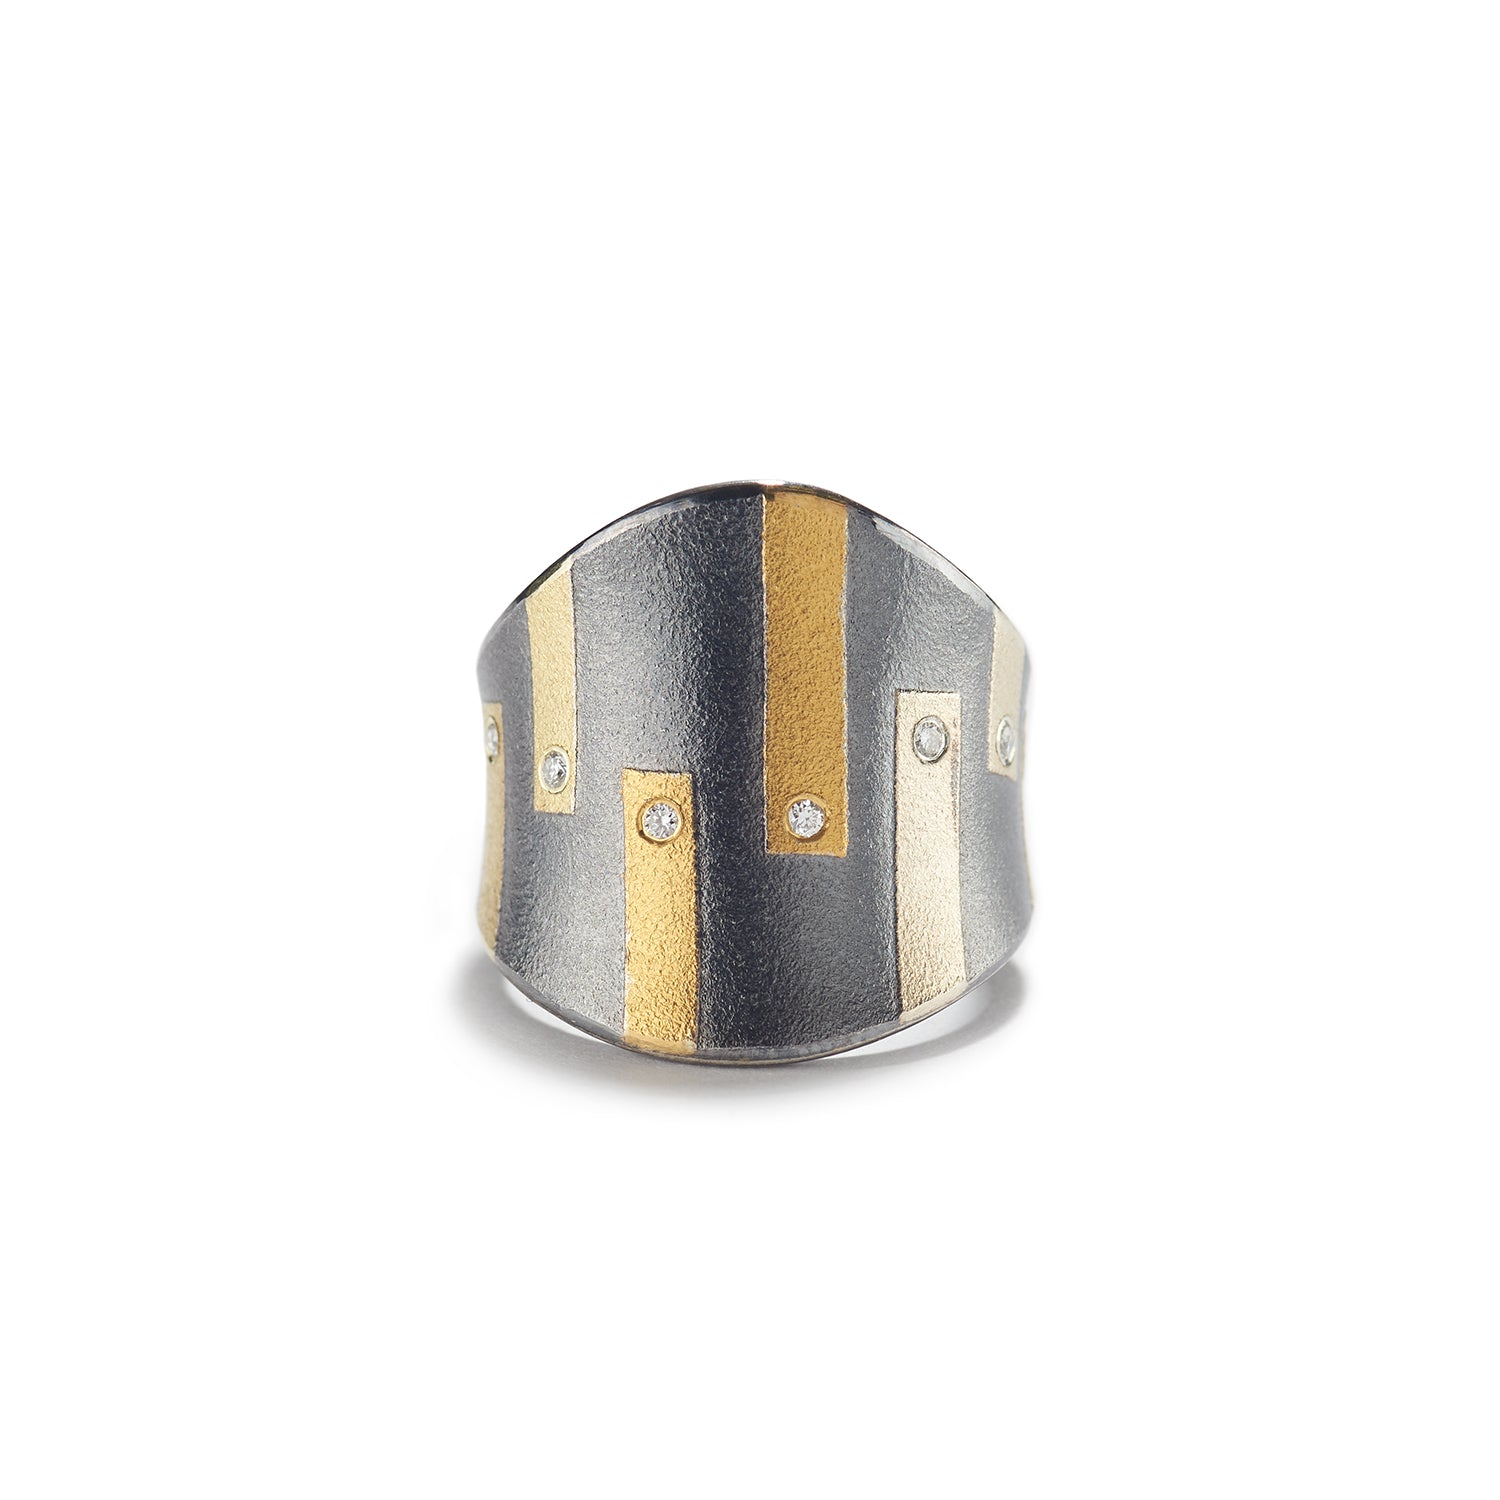 Hues of Gold & Diamond Ring with Silver